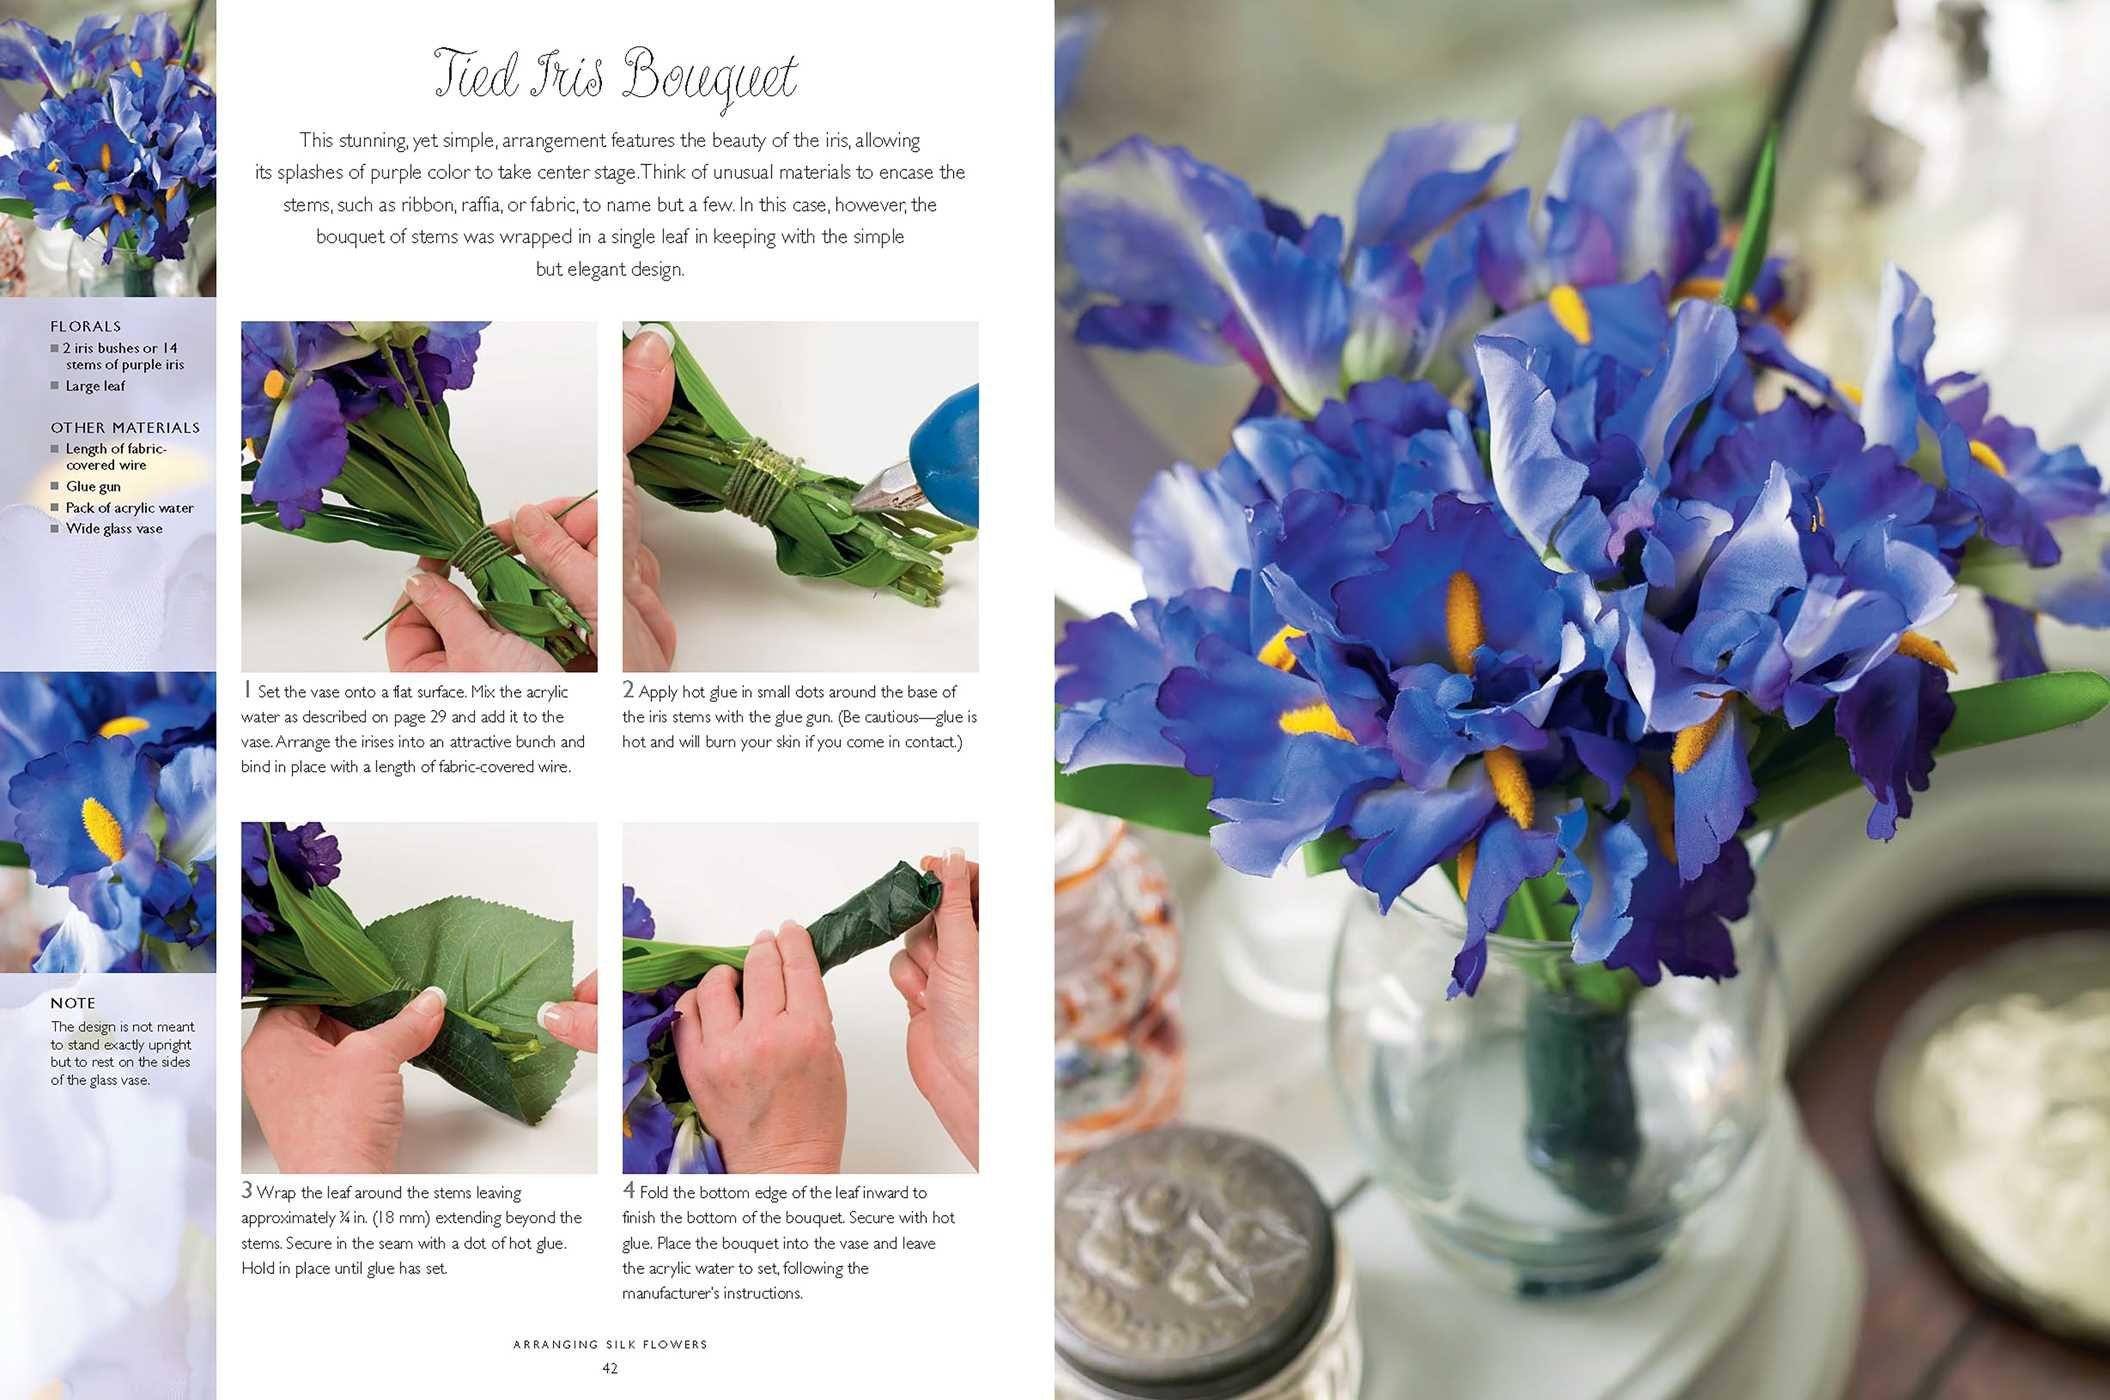 Arranging faux flowers and foliage 35 creative step by step arranging faux flowers and foliage 35 creative step by step projects linda peterson 9781782494812 amazon books izmirmasajfo